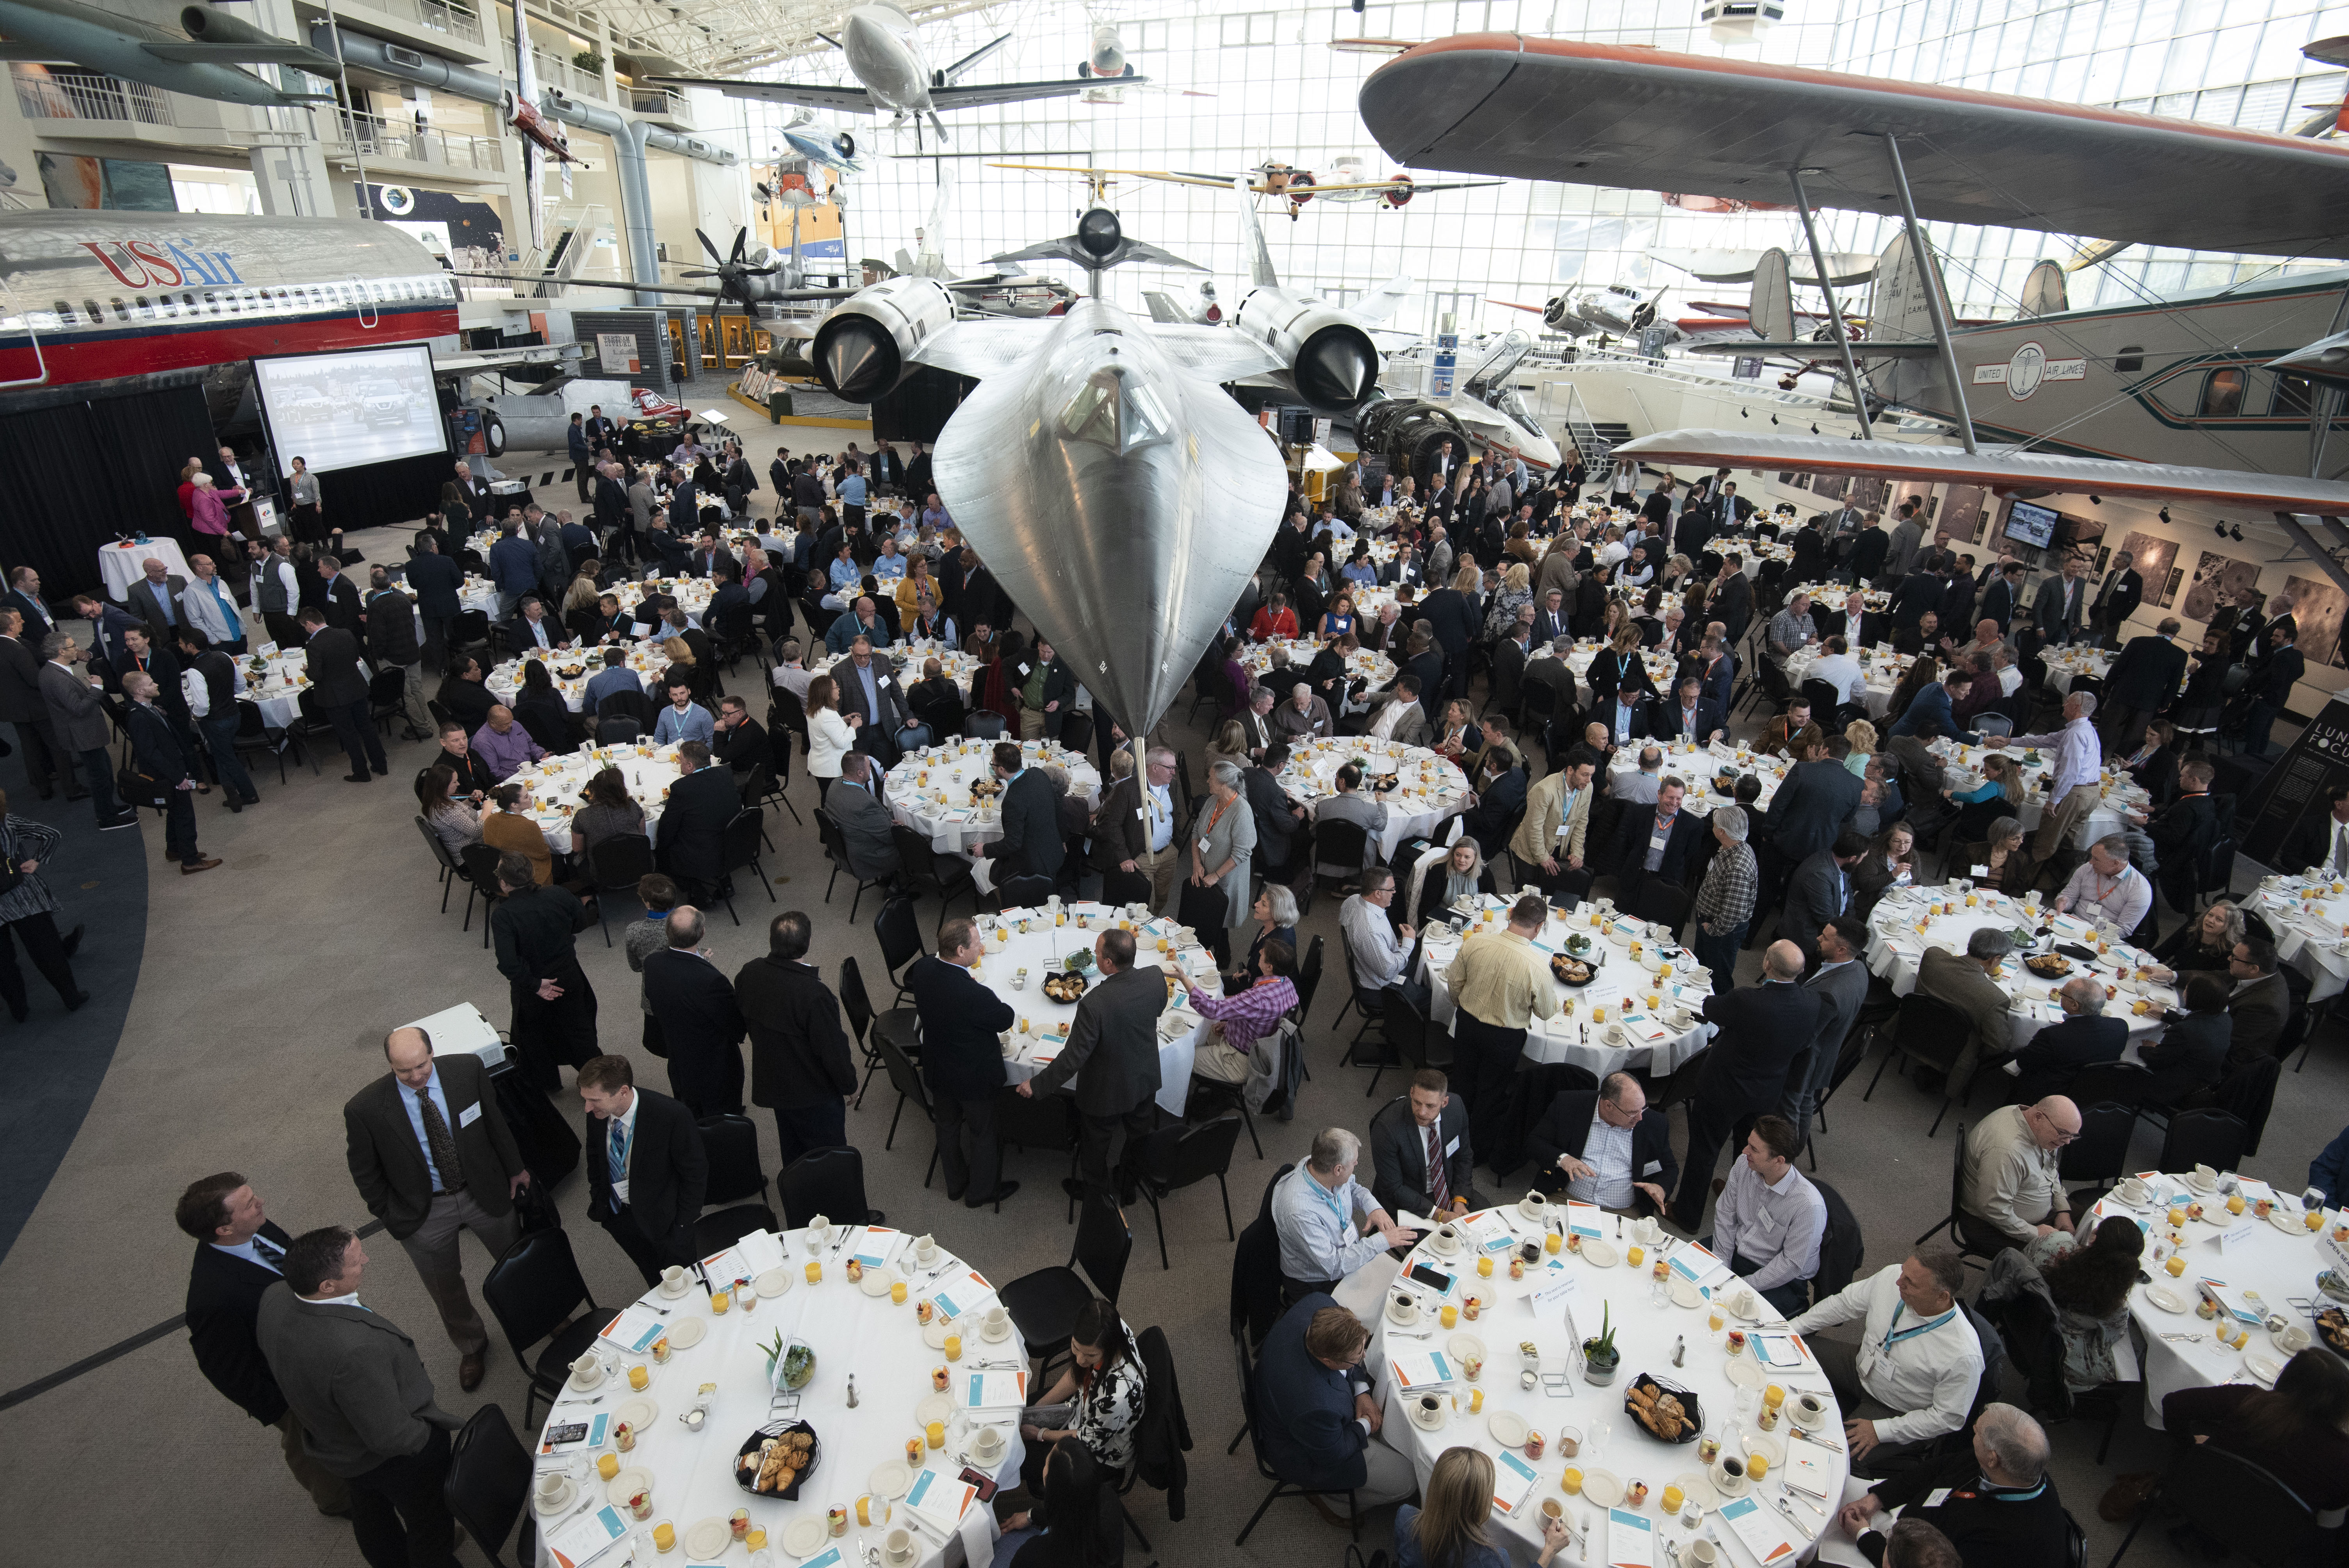 Banquet hall with airplanes displayed above the tables.